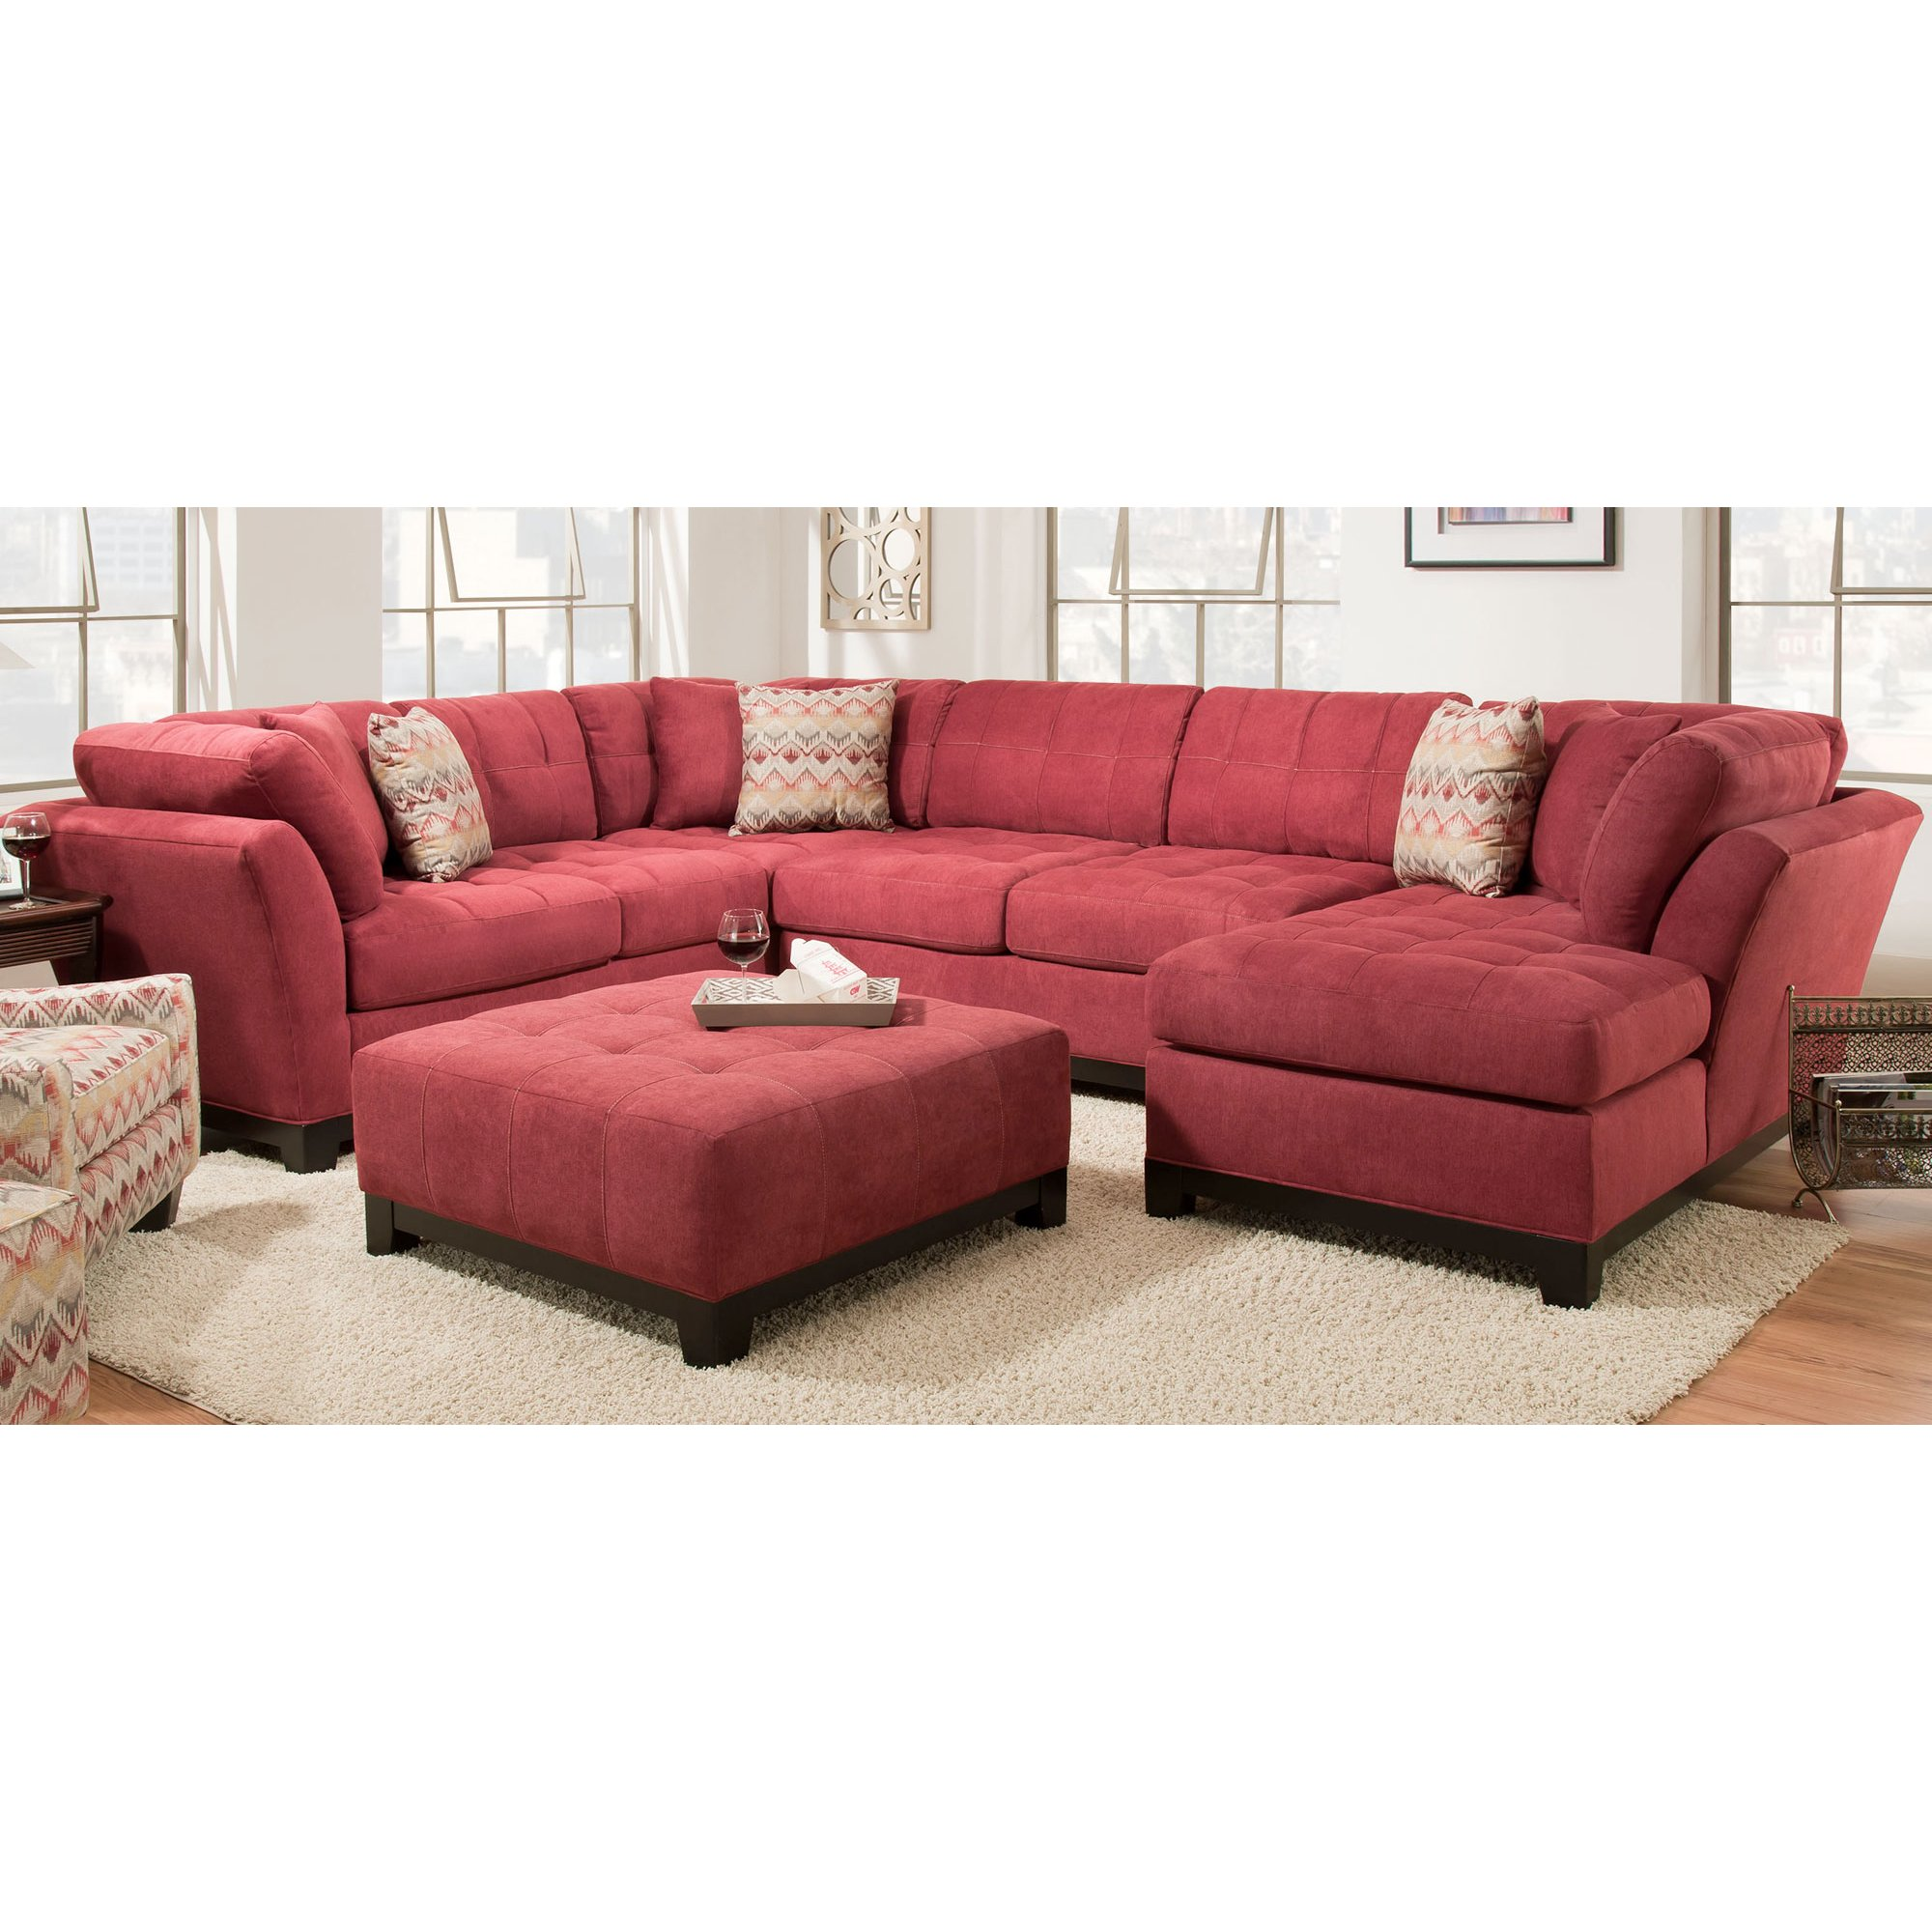 Sectionals fabric sectionals & fabric sectional sofas